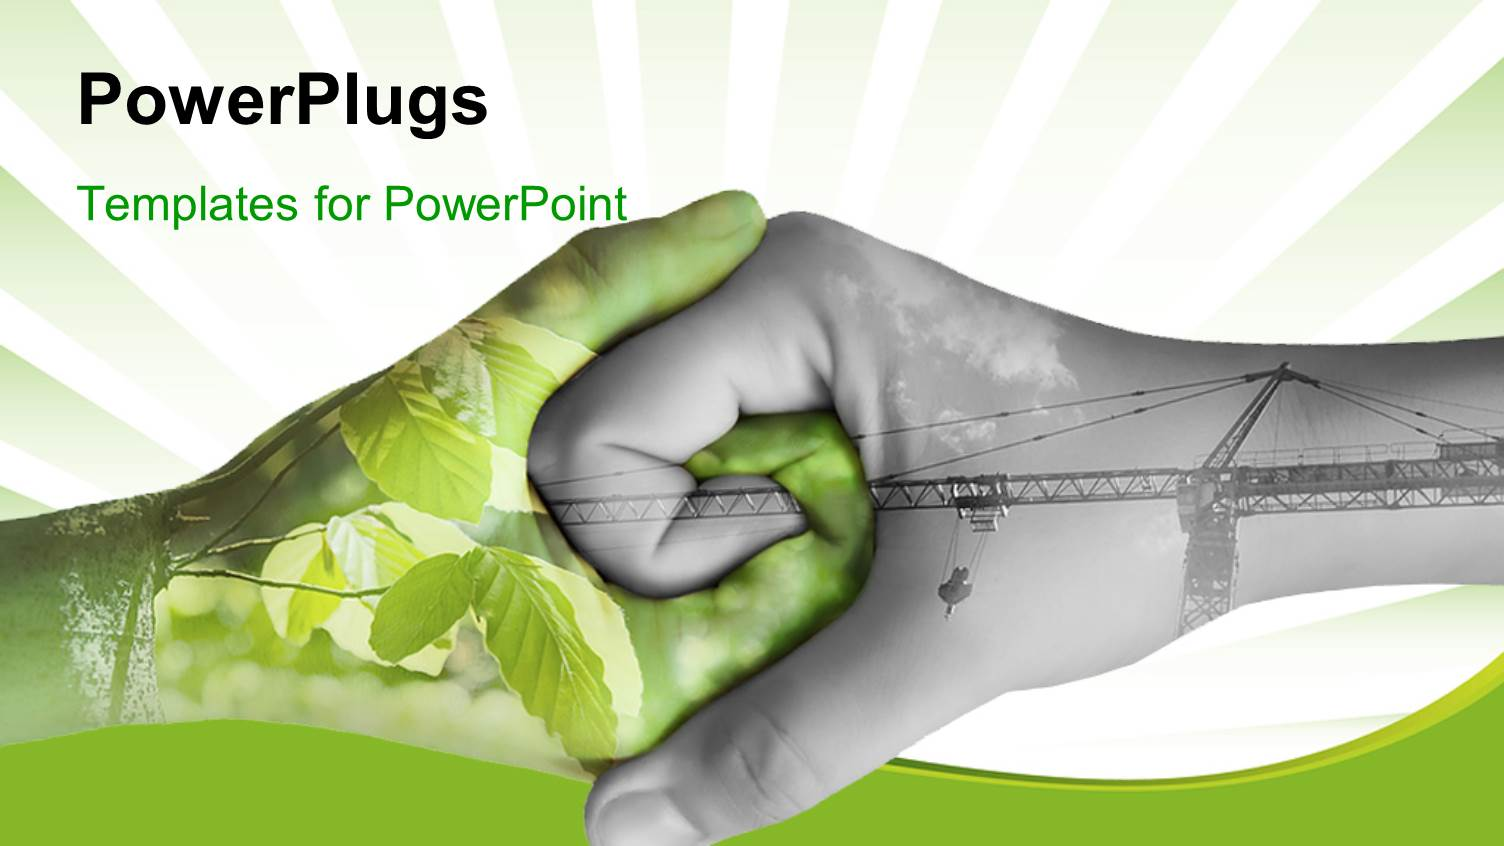 Powerpoint template human hand holding private and confidential audience pleasing ppt theme featuring two hands depicting nature and industry holding each other toneelgroepblik Choice Image